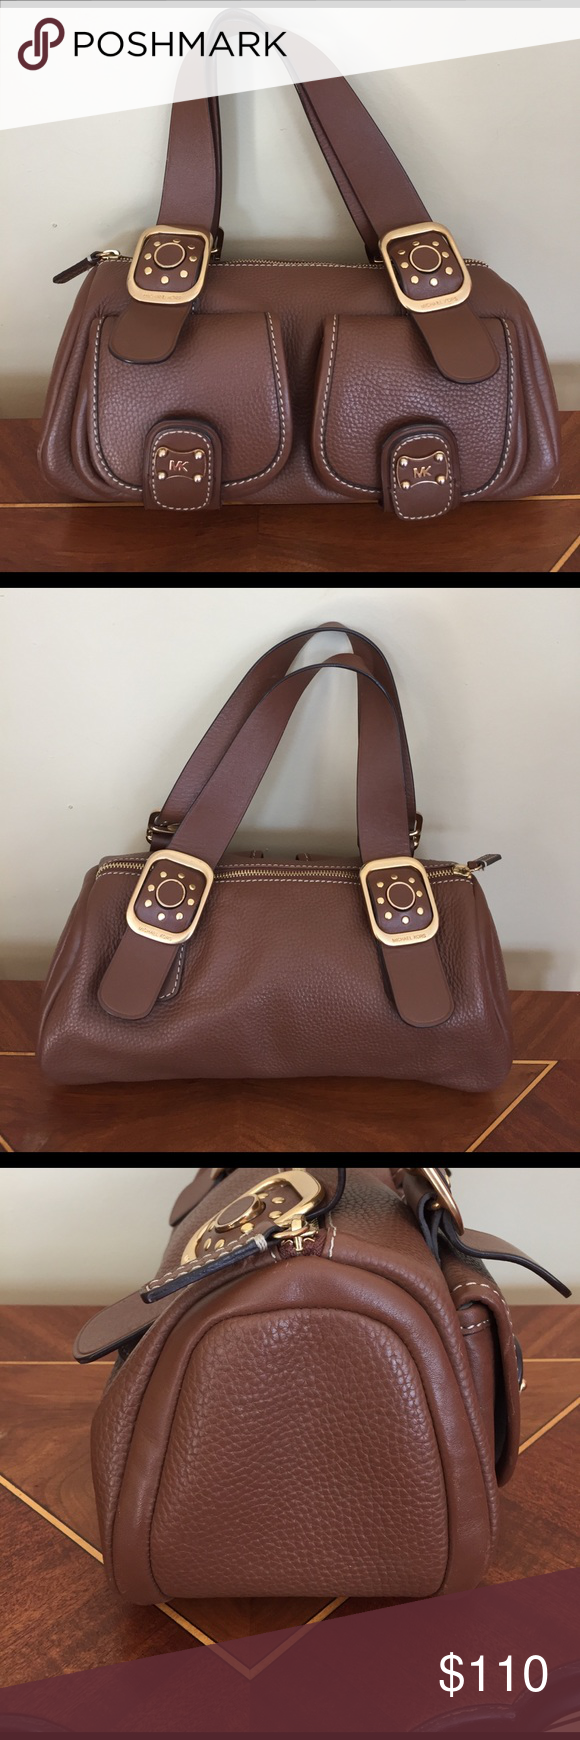 "Michael Kors Pebbled Leather Bag PRICE FIRM Michael Michael Kors Brown Pebbled Brown Leather Bag. This is Has been worn but in good Used Condition. Some marks and wear on bag. Measurements appropriately 6 1/2"" H x 12"" x  5""  6 1/2"" Strap Drop. Please see Photos! Ask Questions! Michael Kors Bags"